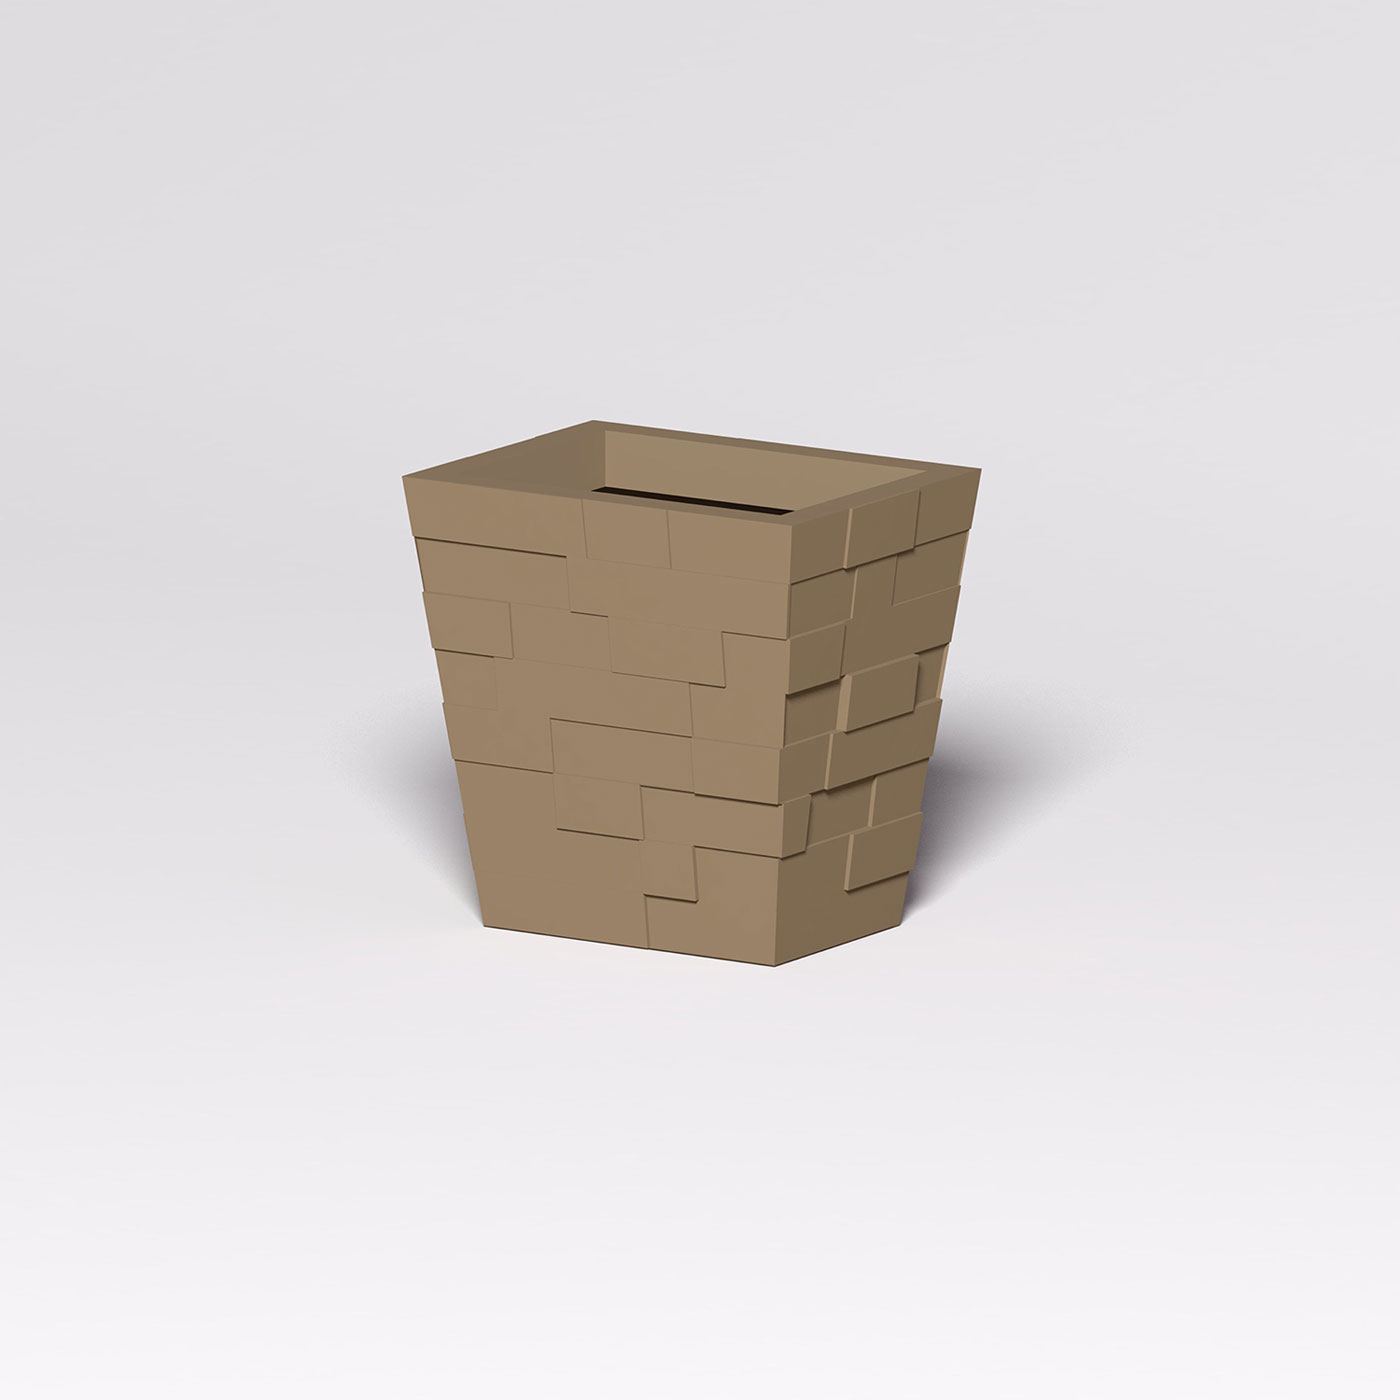 planter planters glamorous box provide rectangular boxes large rectangle ideas wooden perfect tall the flower